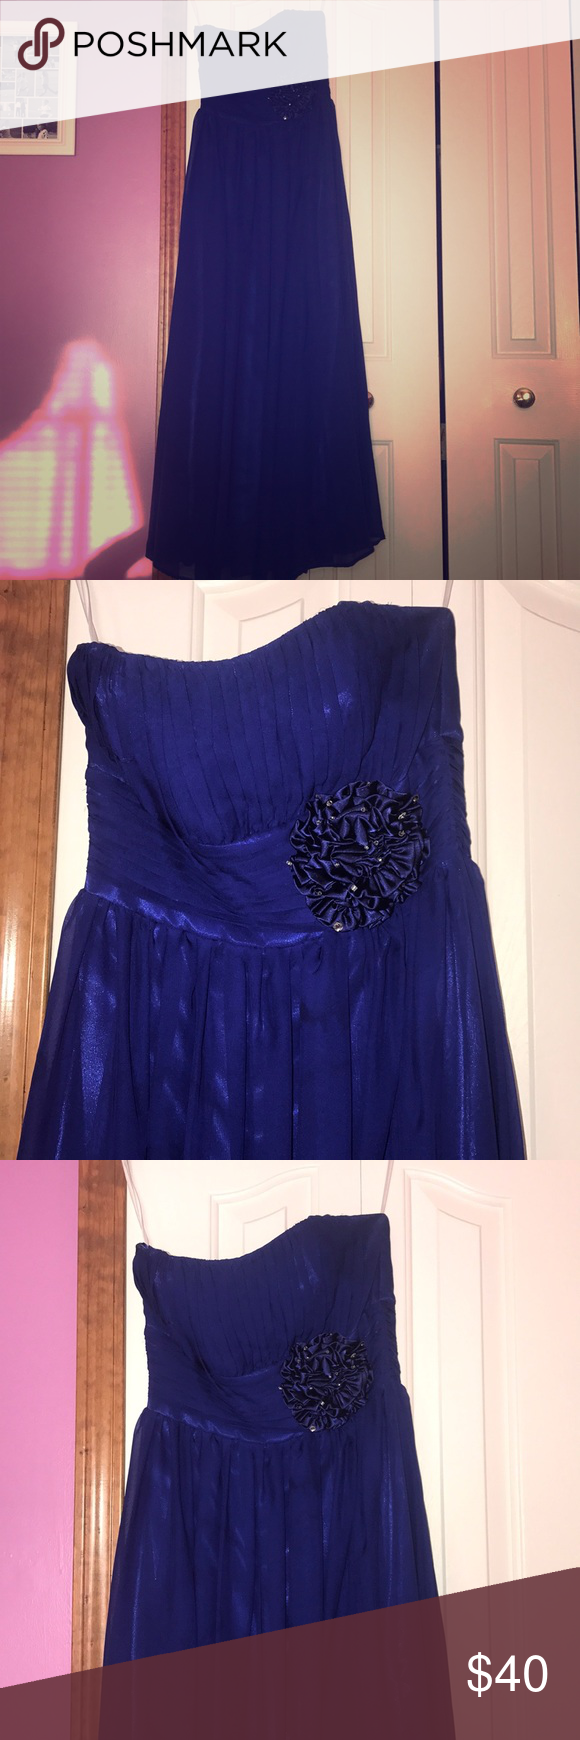 Strapless navy blue long dress only worn once for a wedding it is a